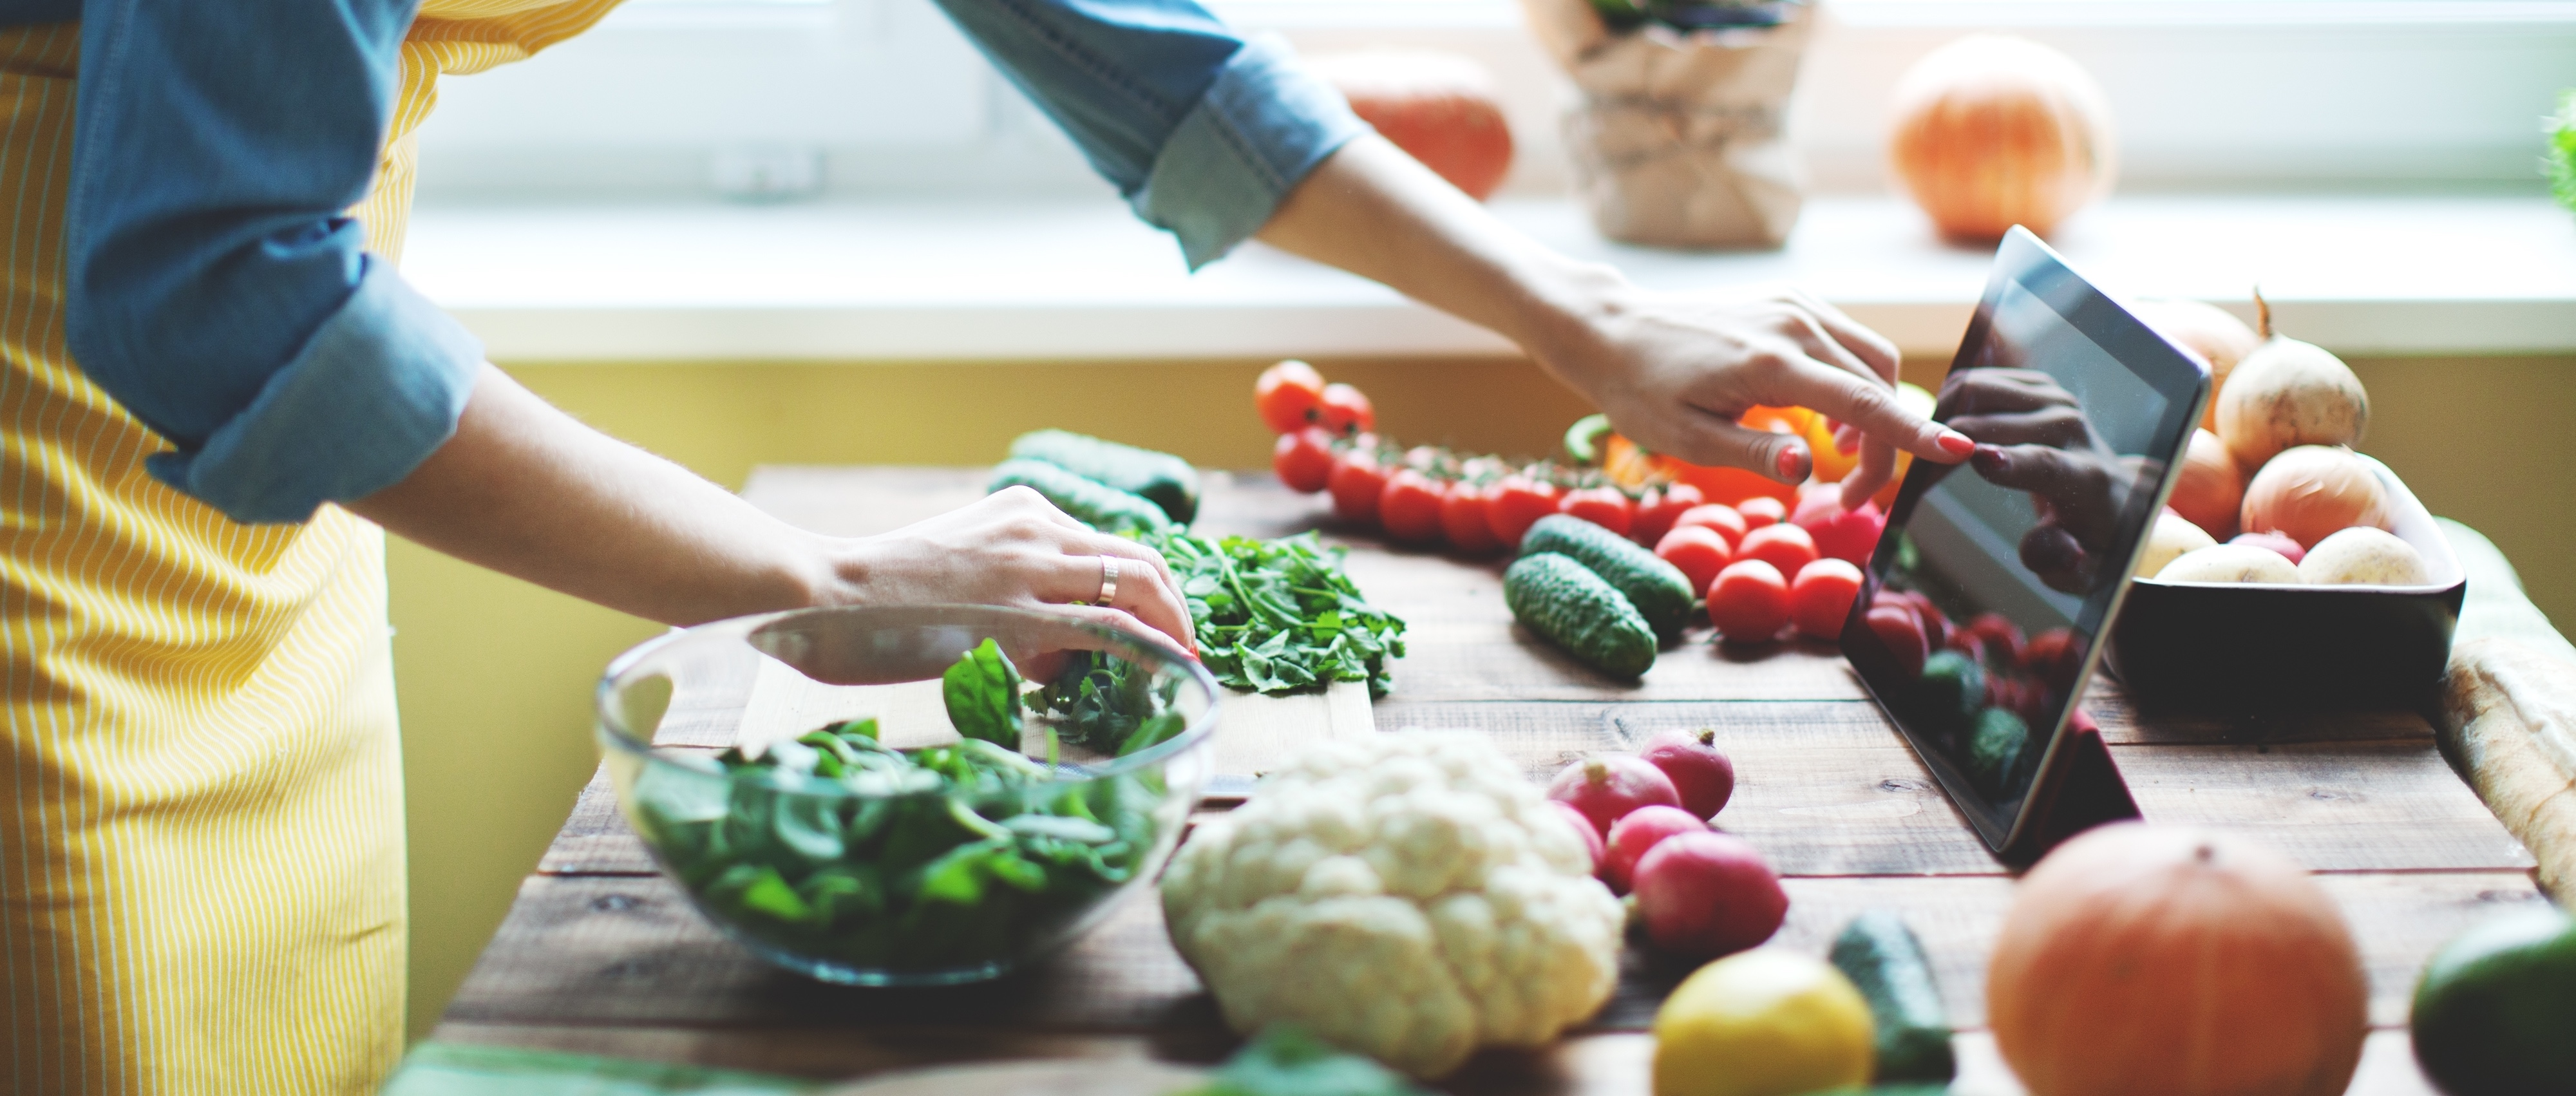 The Simple Guide to Healthy Living on a Budget in 2019 - The